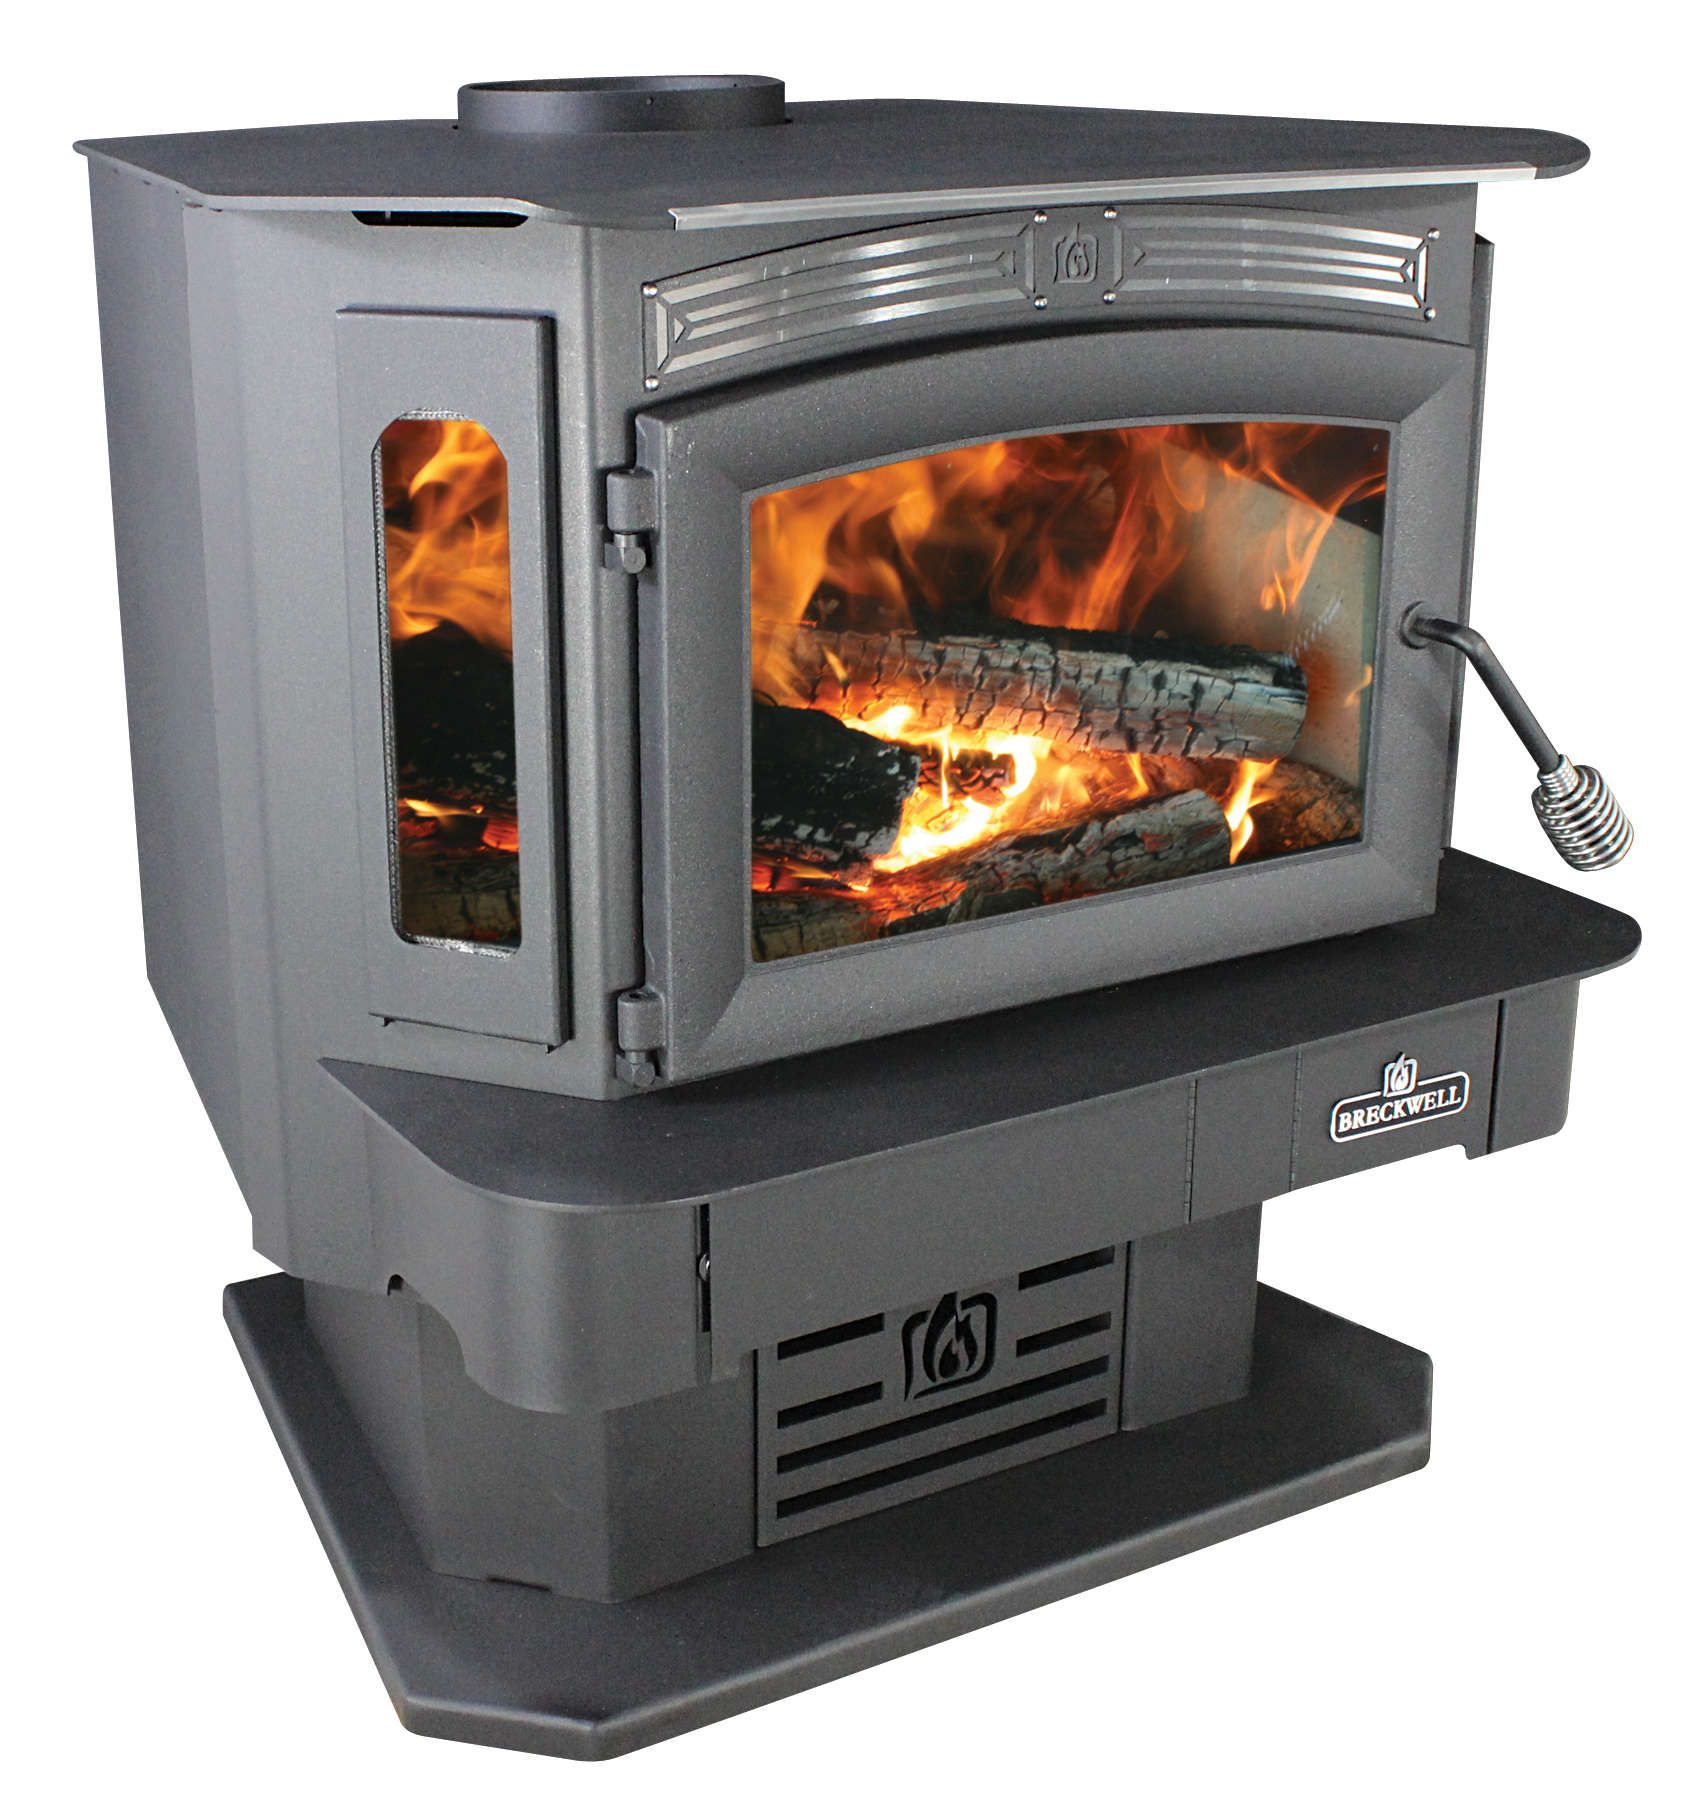 SW940P angle left wood burning stove repair & replacement parts online buck stove clayton wood furnace wiring diagram at n-0.co